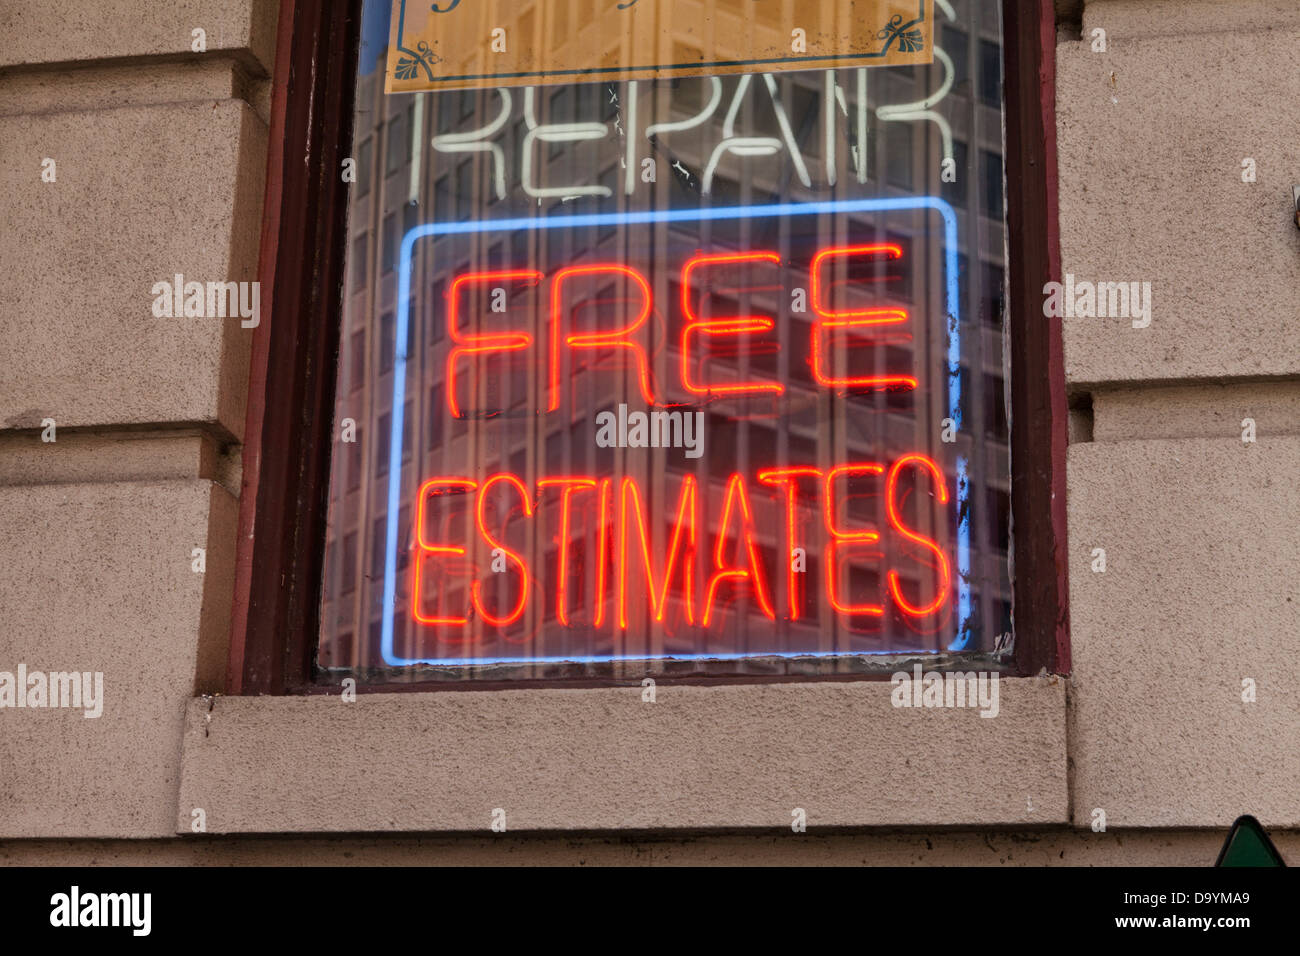 Free estimates neon sign - Stock Image